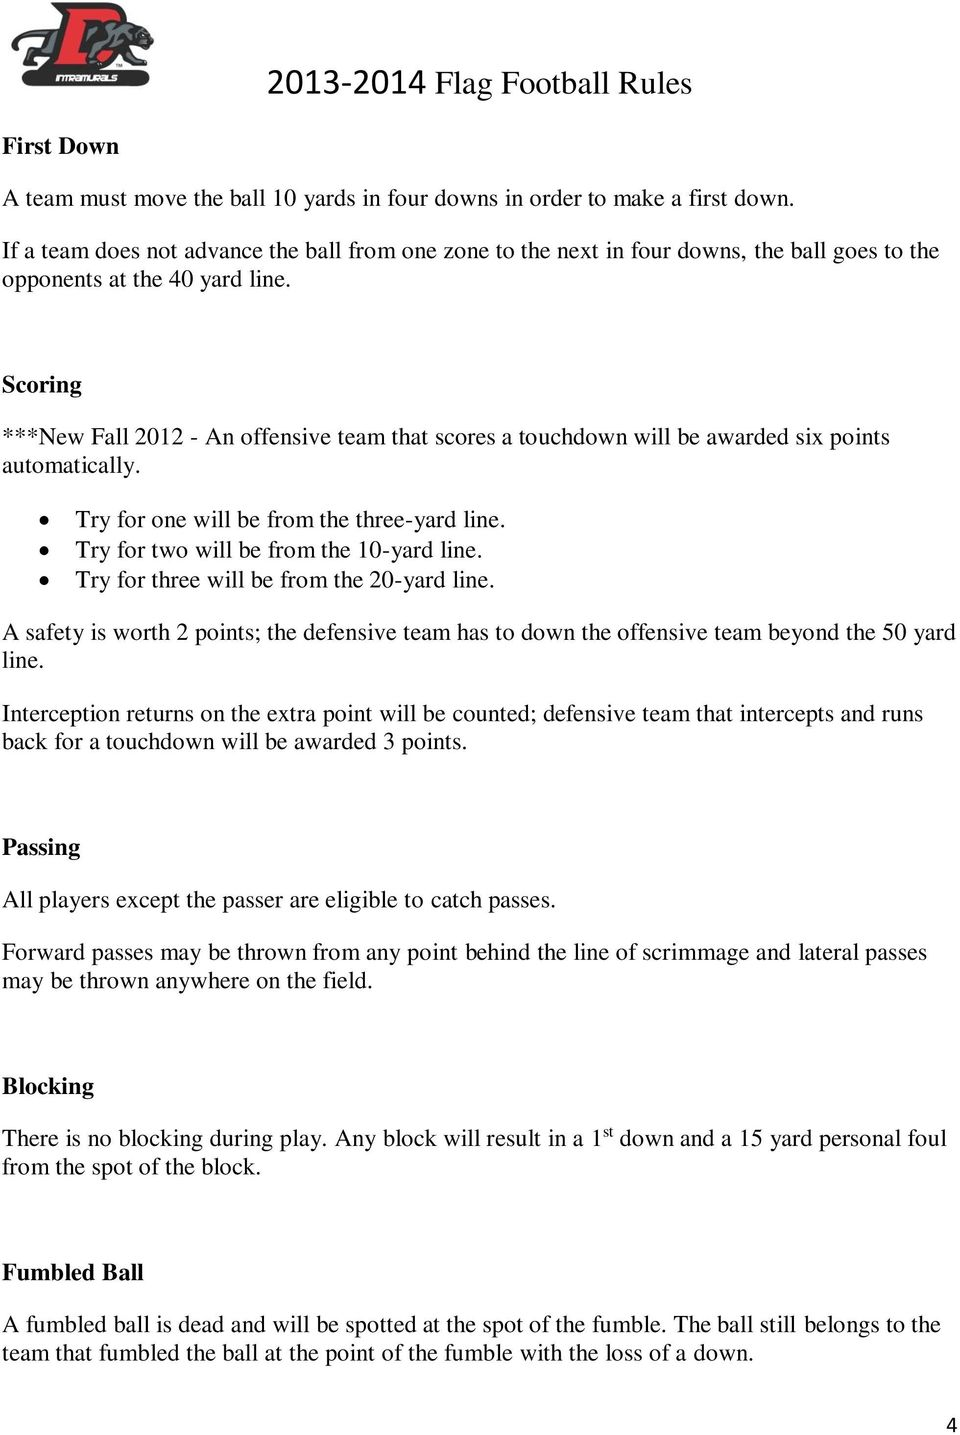 Scoring ***New Fall 2012 - An offensive team that scores a touchdown will be awarded six points automatically. Try for one will be from the three-yard line. Try for two will be from the 10-yard line.